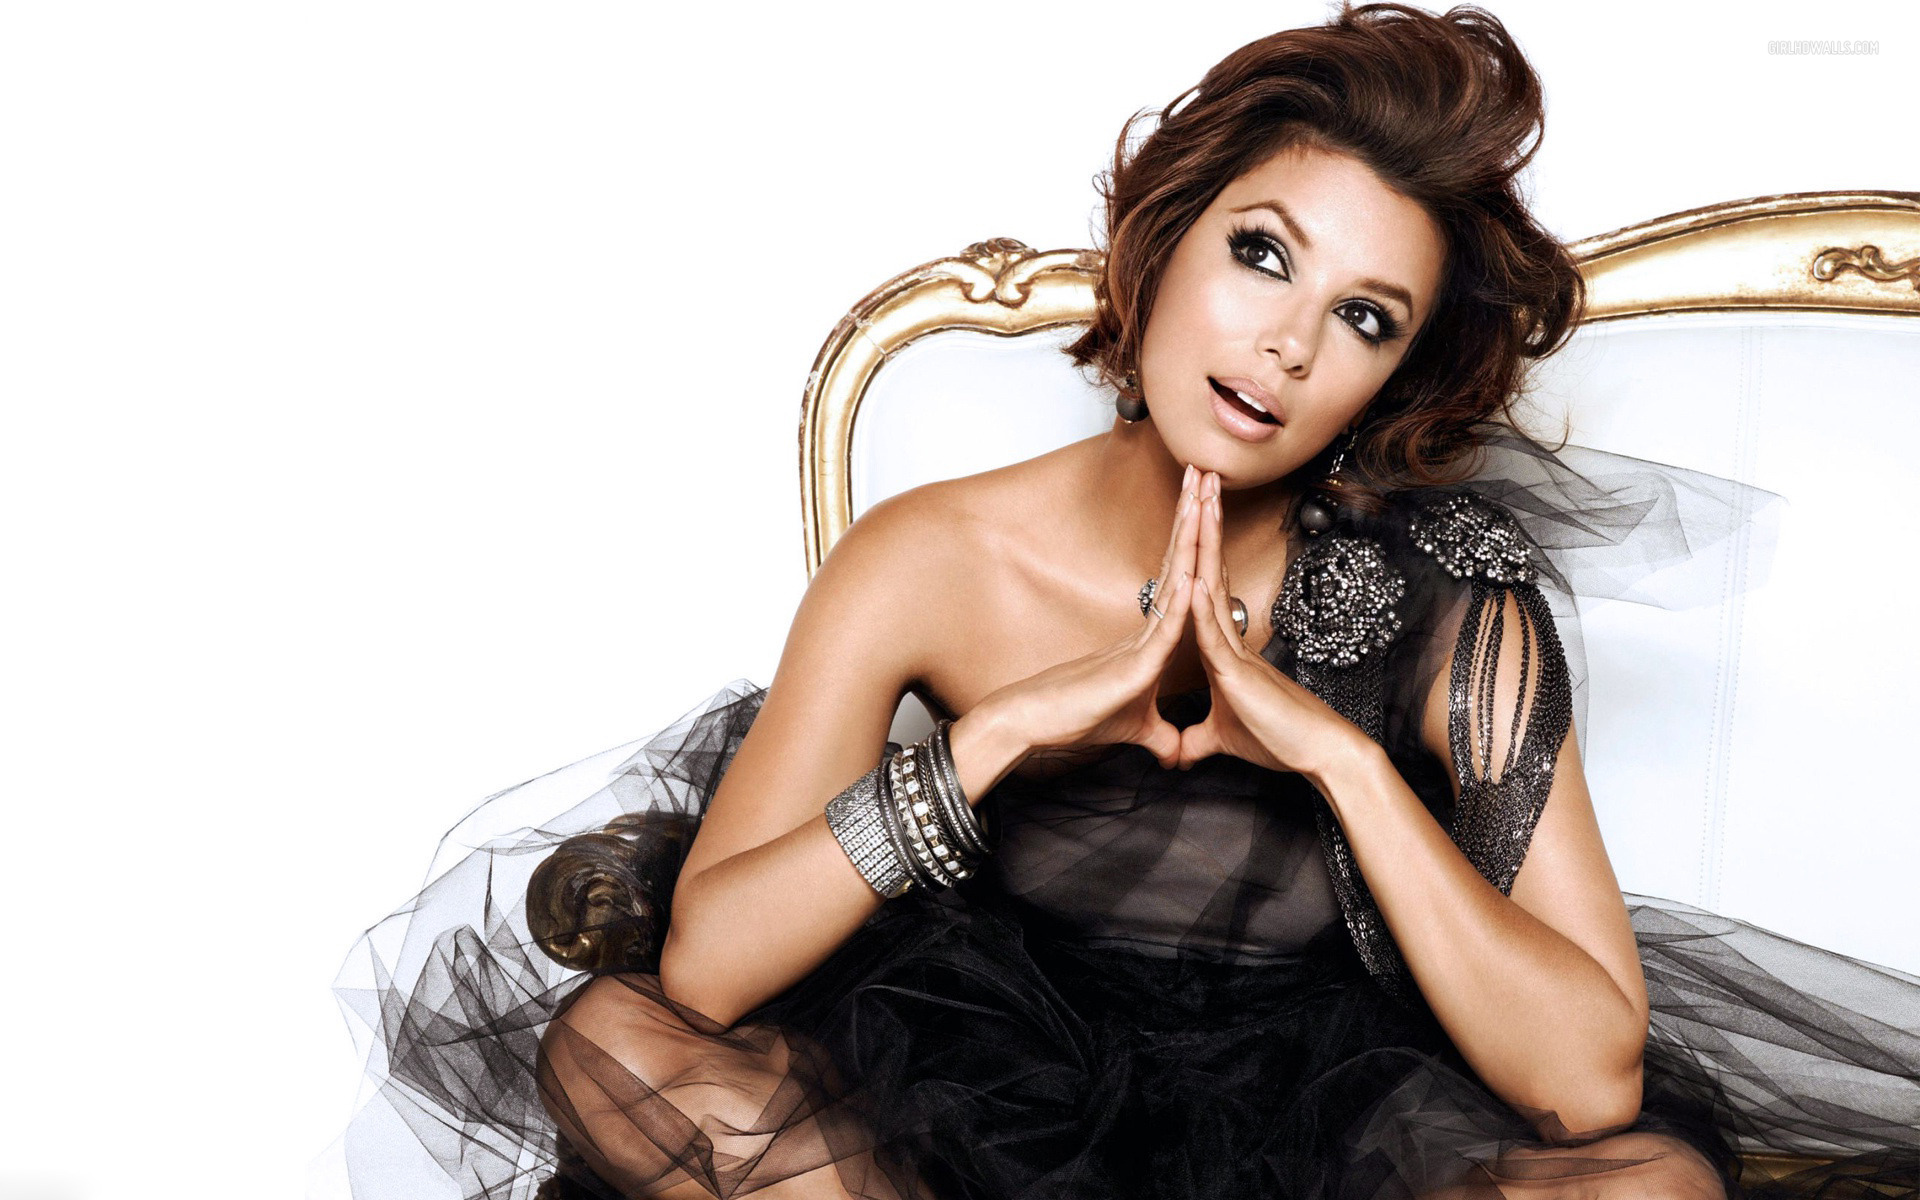 Eva Longoria Wallpapers High Resolution and Quality Download